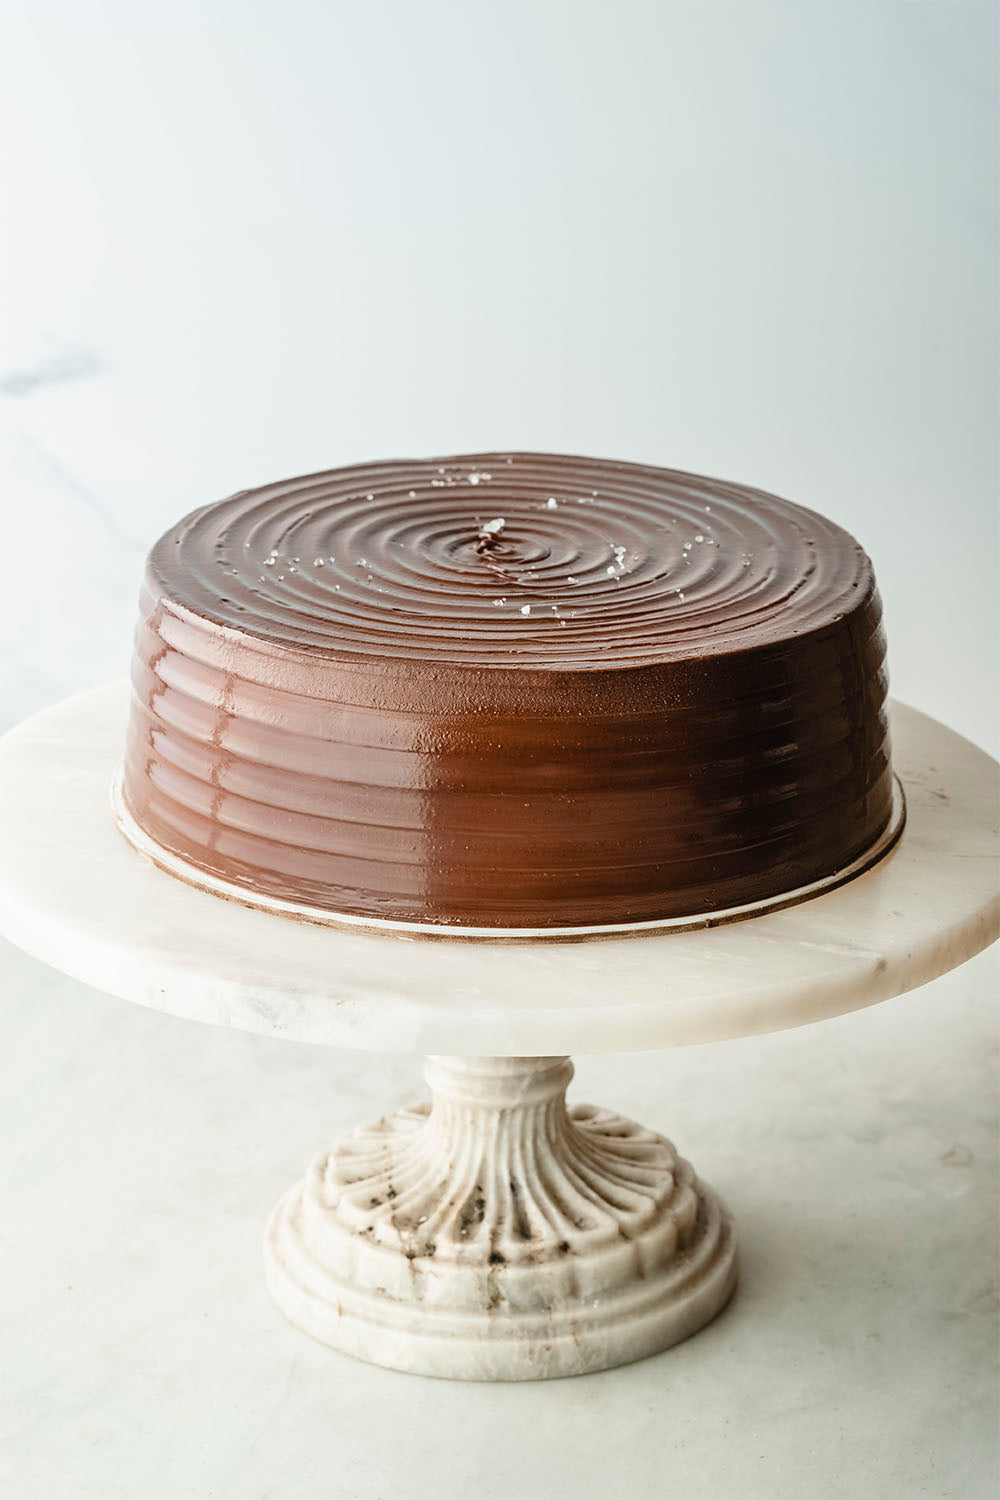 Whole Salted Chocolate Cake with Caramel dessert or pastry